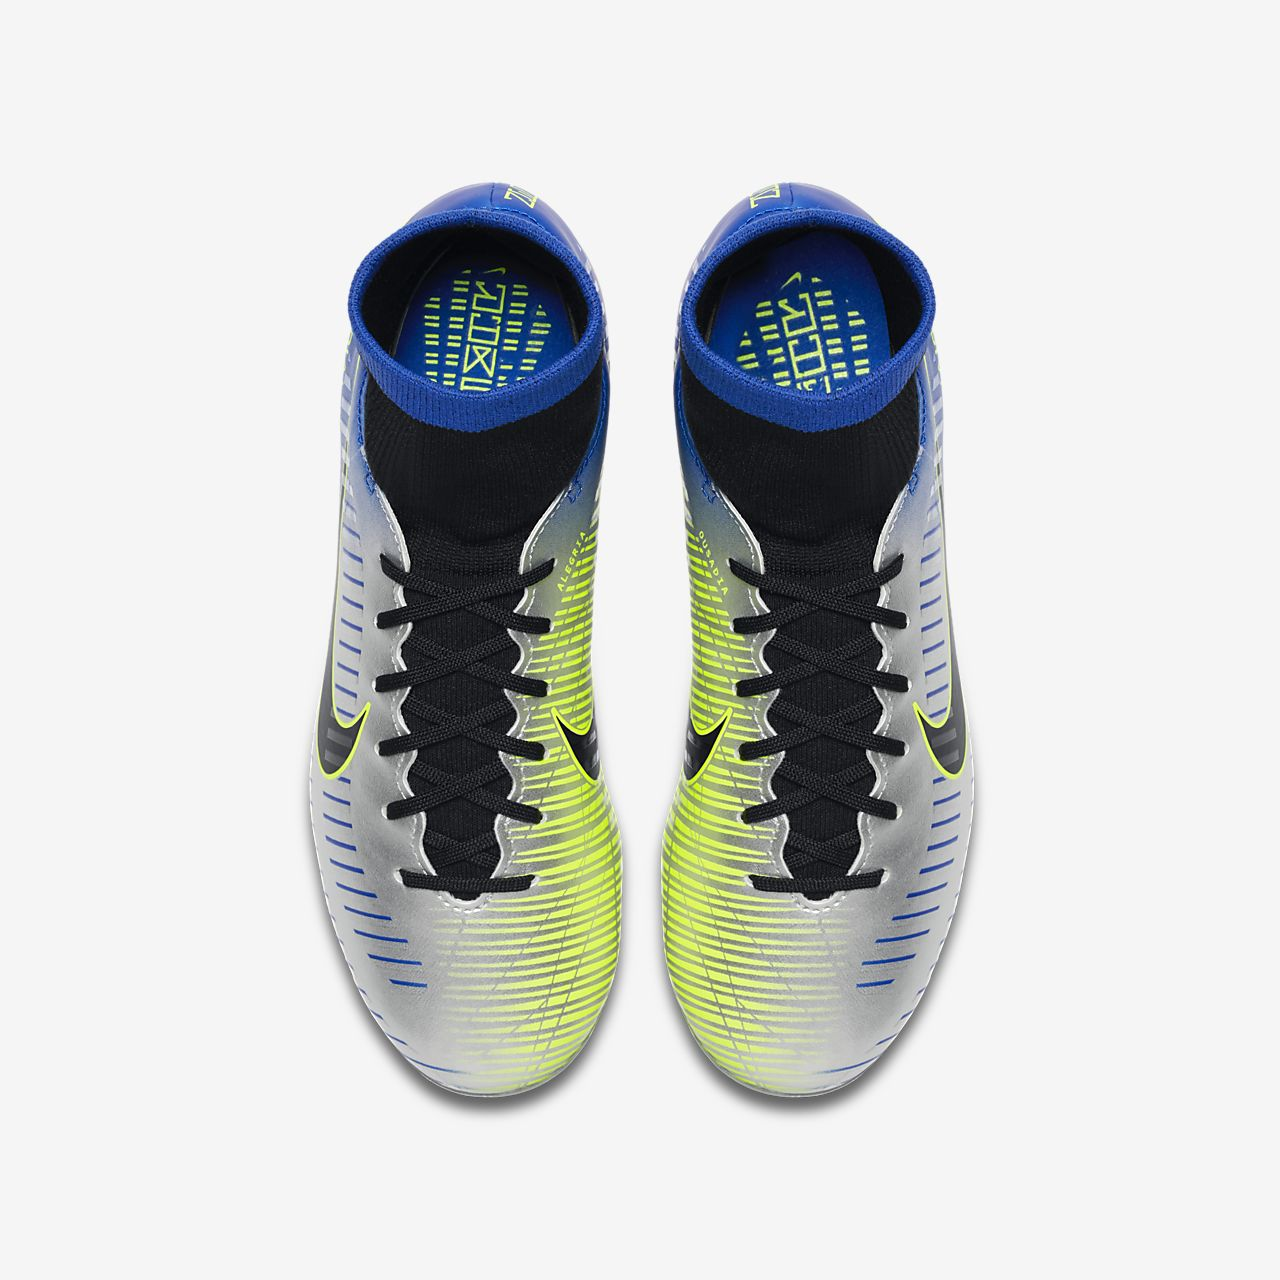 ... Nike Jr. Mercurial Victory VI Dynamic Fit Neymar AG-PRO Older Kids'  Artificial